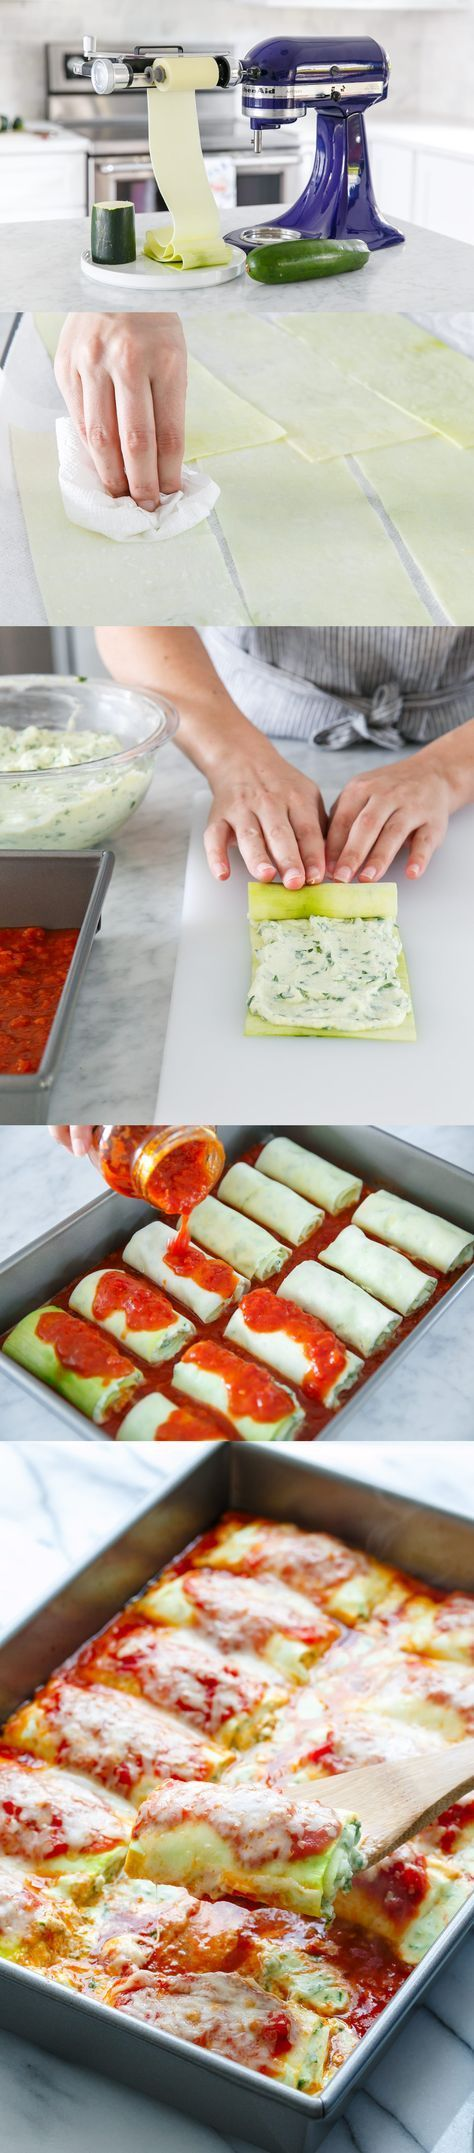 kitchenaid vegetable sheet cutter. happy national zucchini day! @loveandoliveoil is celebrating with her recipe for lasagna rolls kitchenaid vegetable sheet cutter